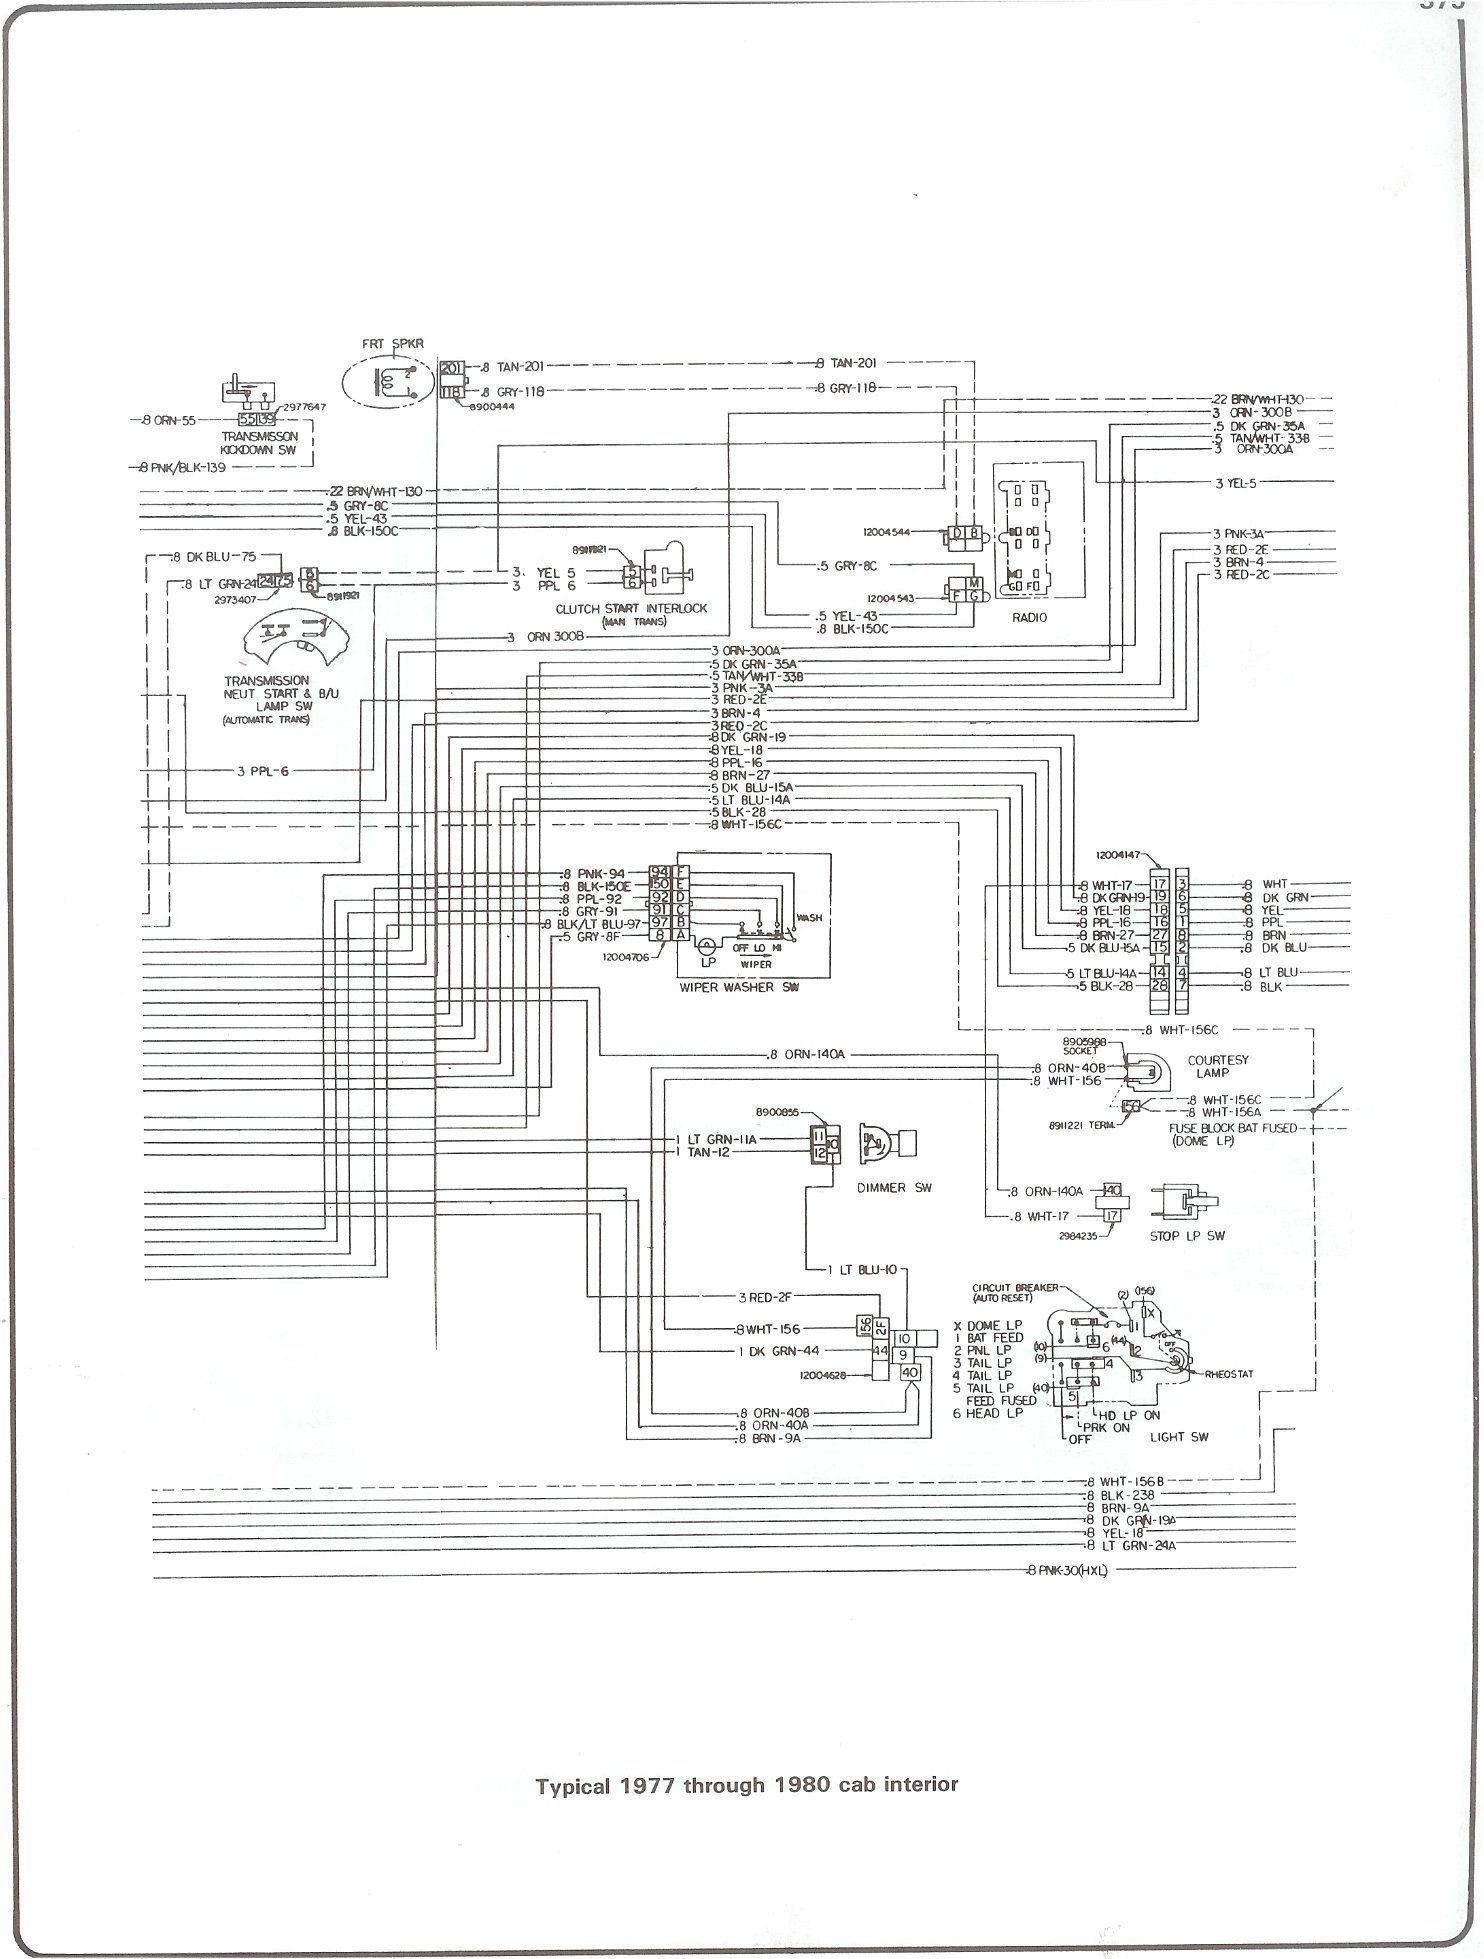 76 Chevy Fuse Box Diagram Wiring Library Sony Cdx Gt35uw 1980 C10 Opinions About U2022 1977 Heater Controller 84